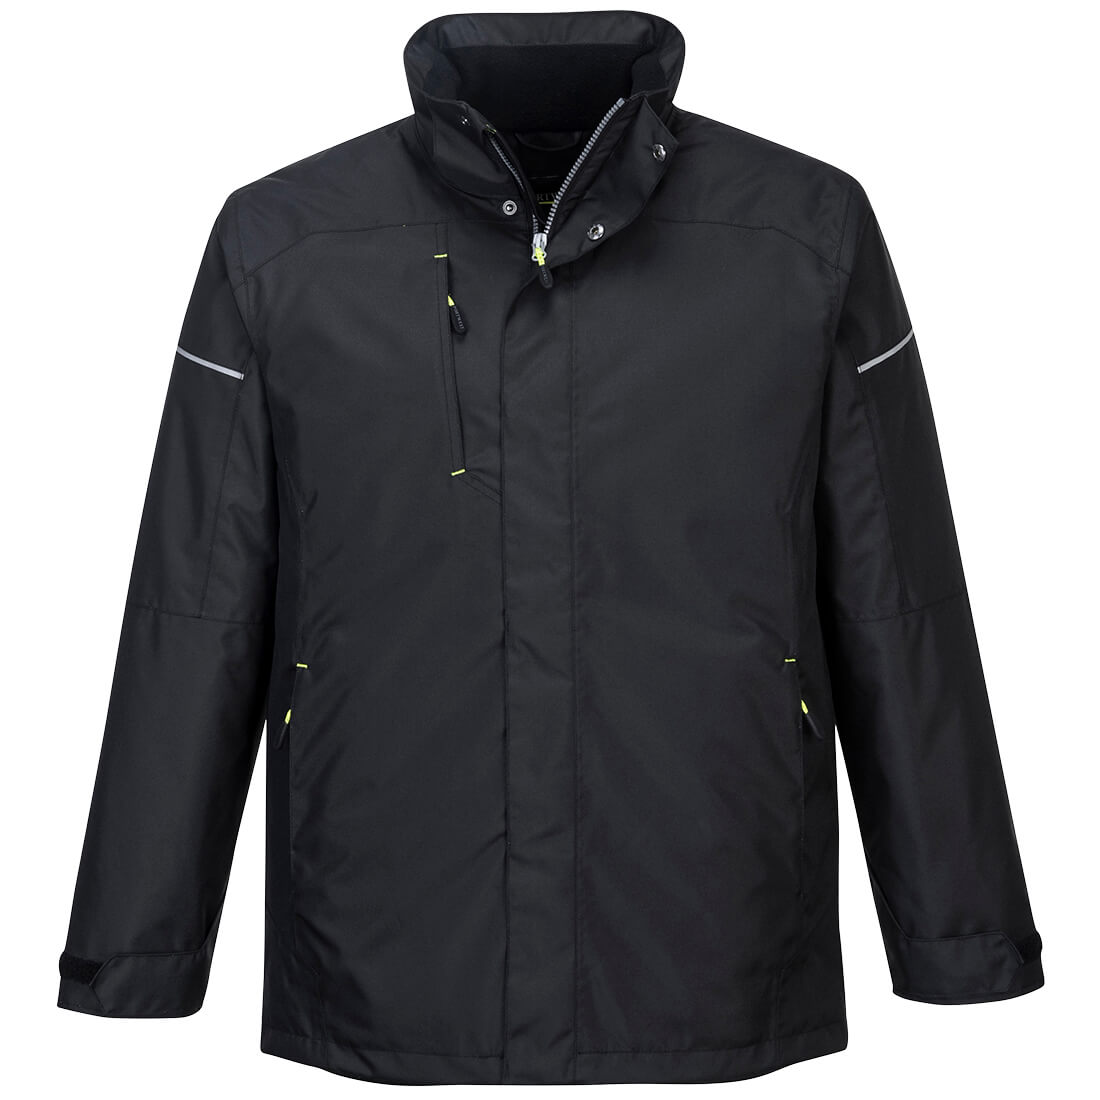 PW3 Winter Jacket Black Medium